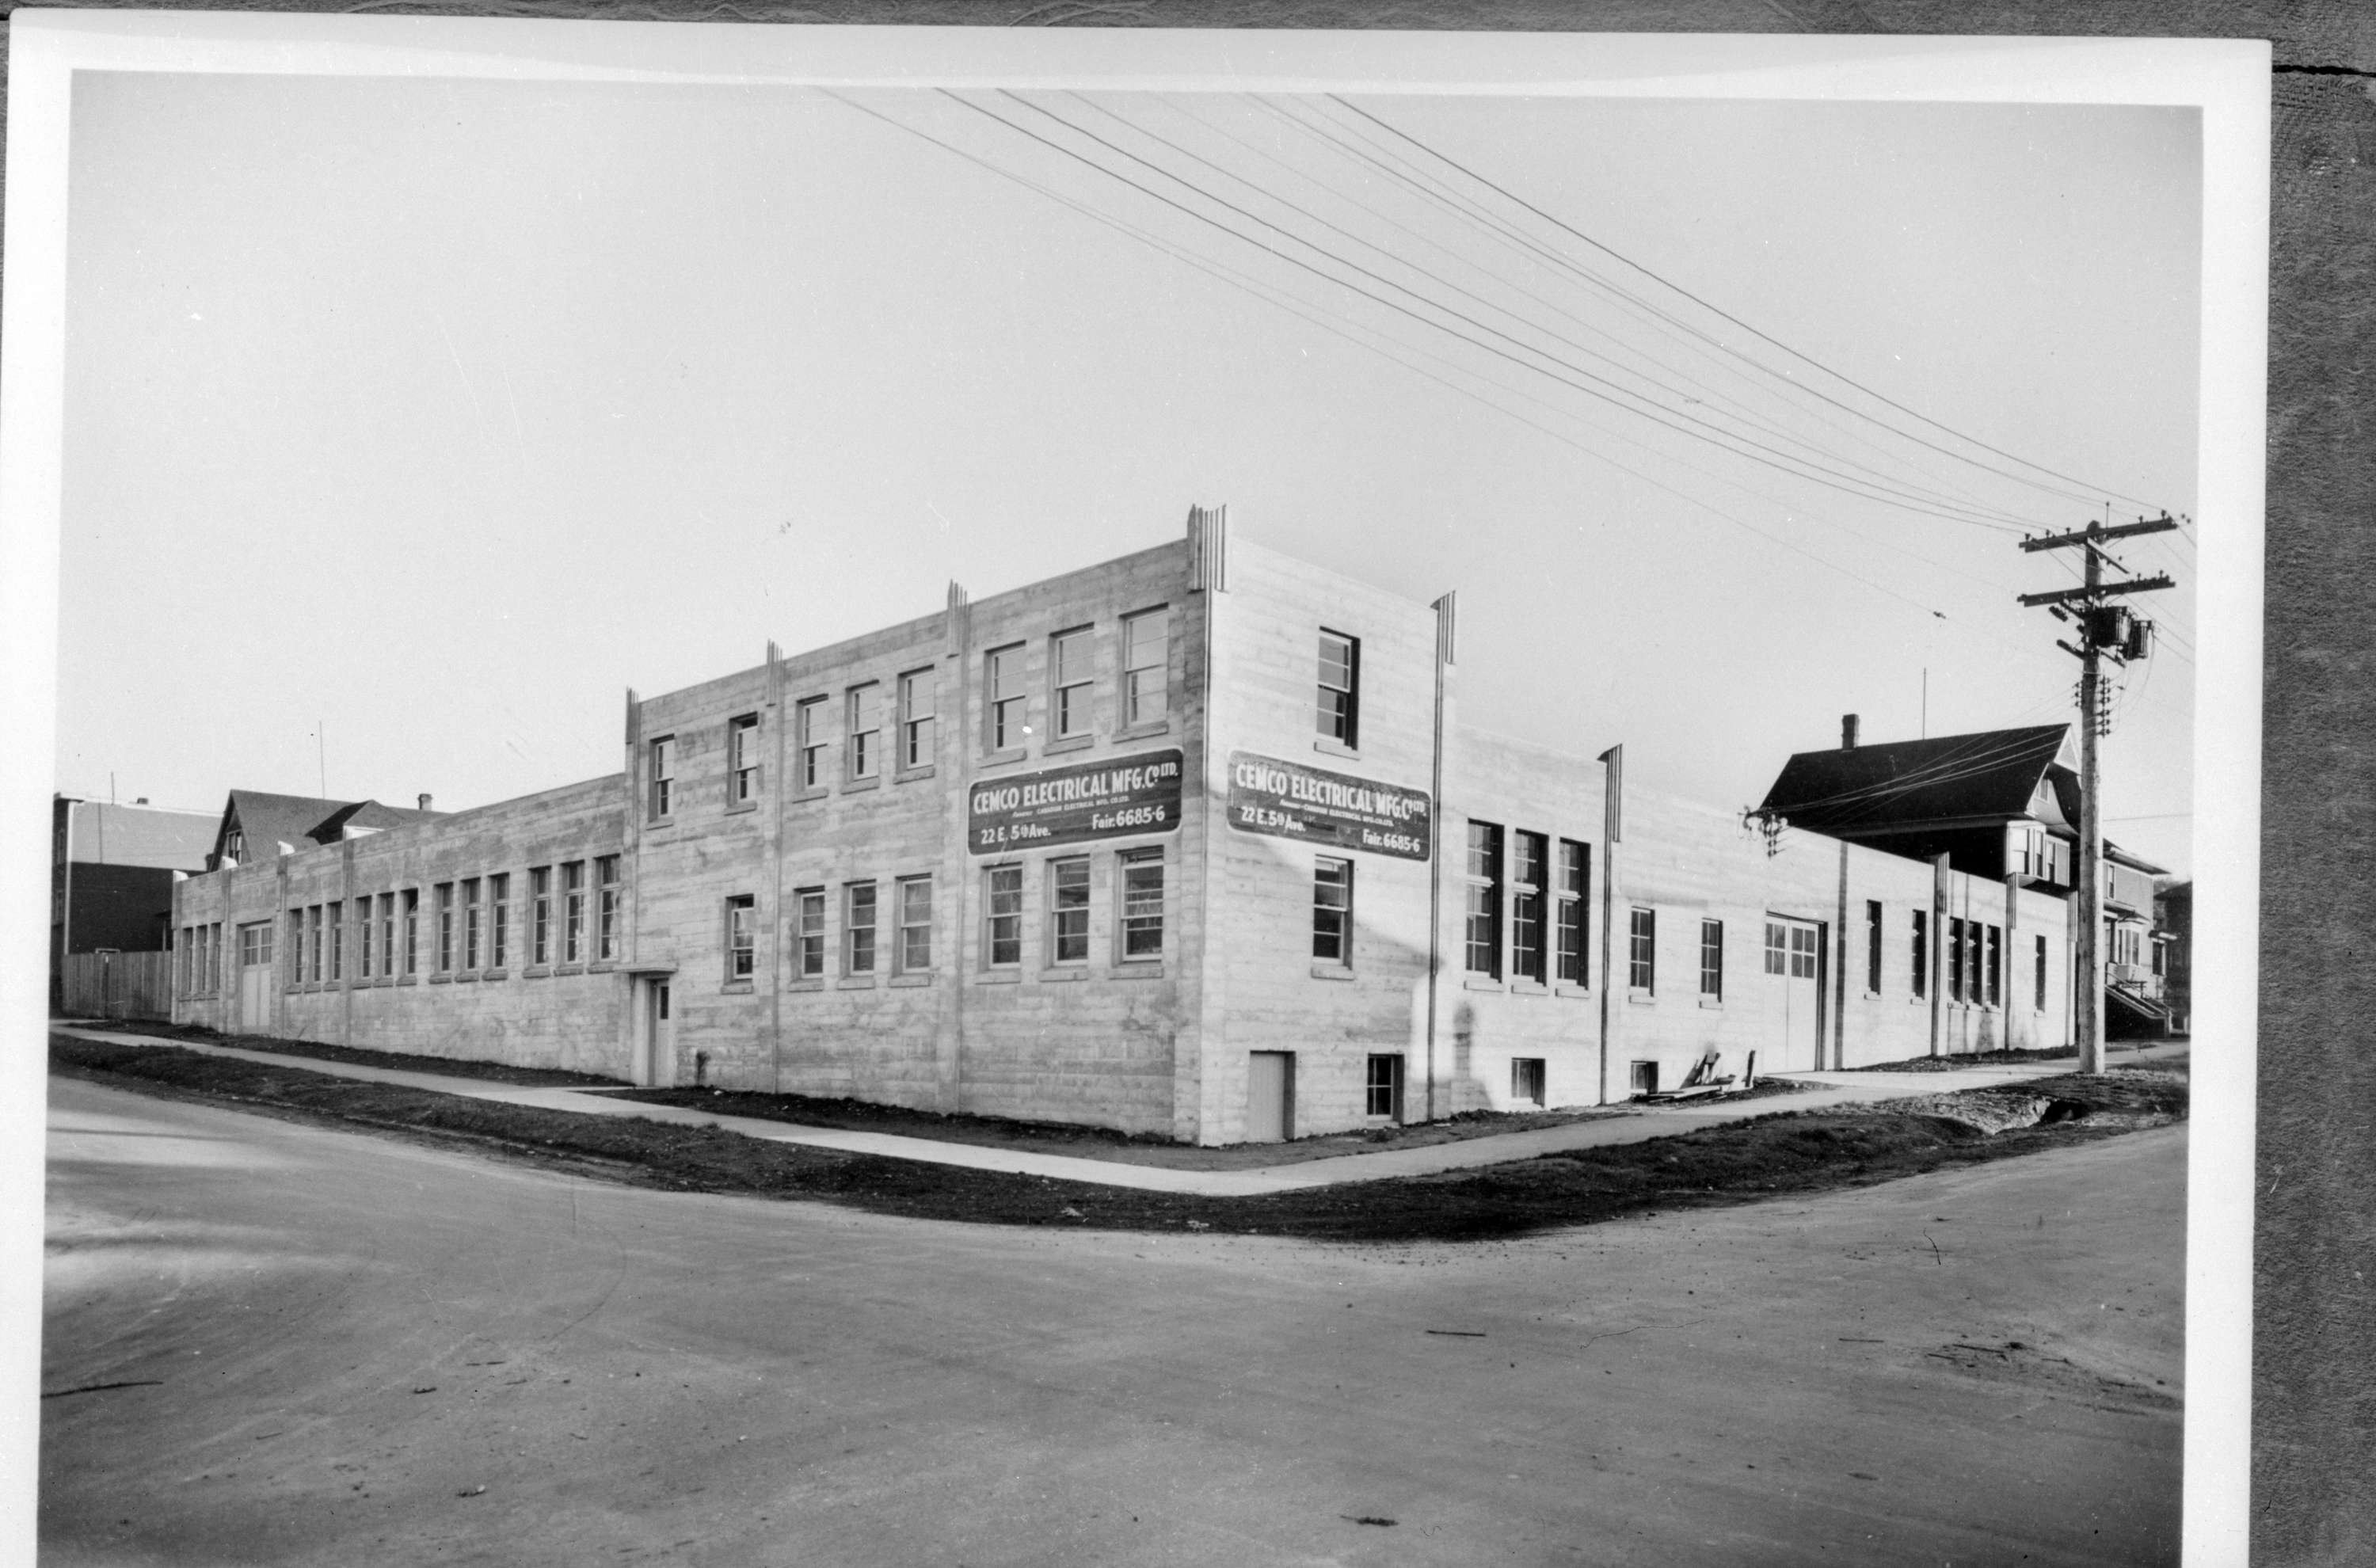 Cemco Electric[al Manufacturing Company building at 22 East 5th ...